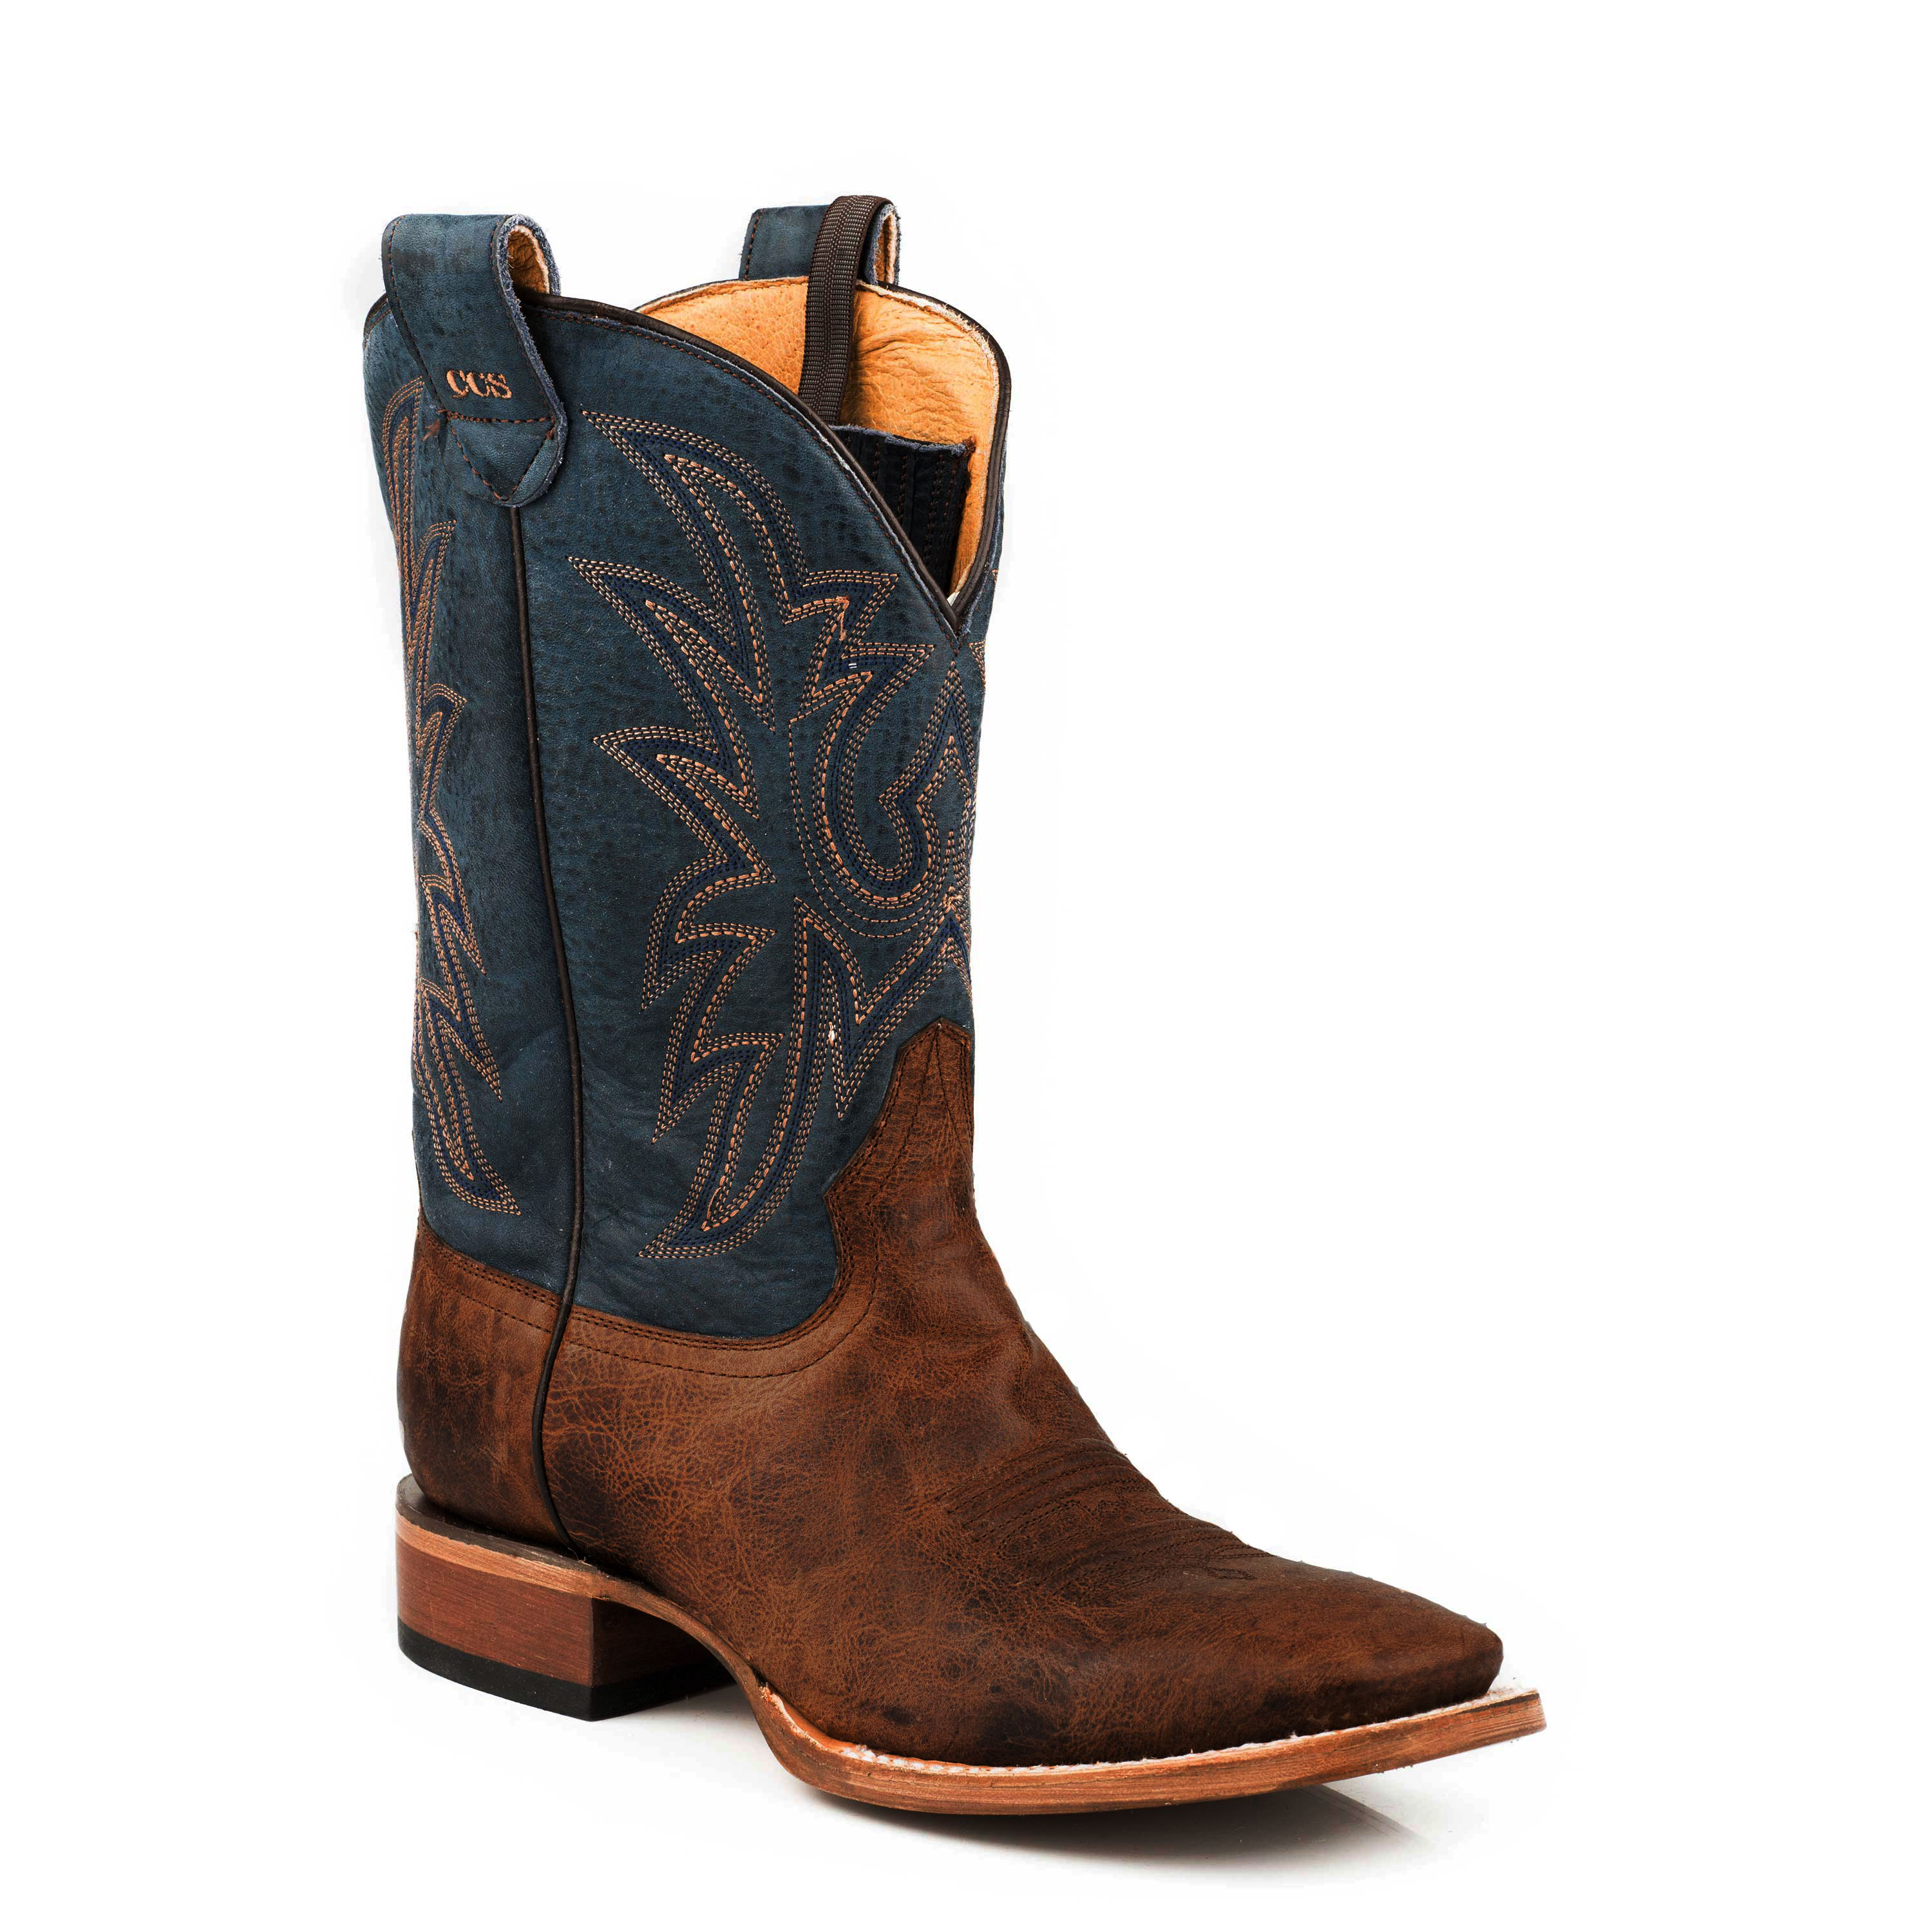 7940d09f8f4 Roper Men's Pierce Concealed Carry Boots - Crater Tan/Blue